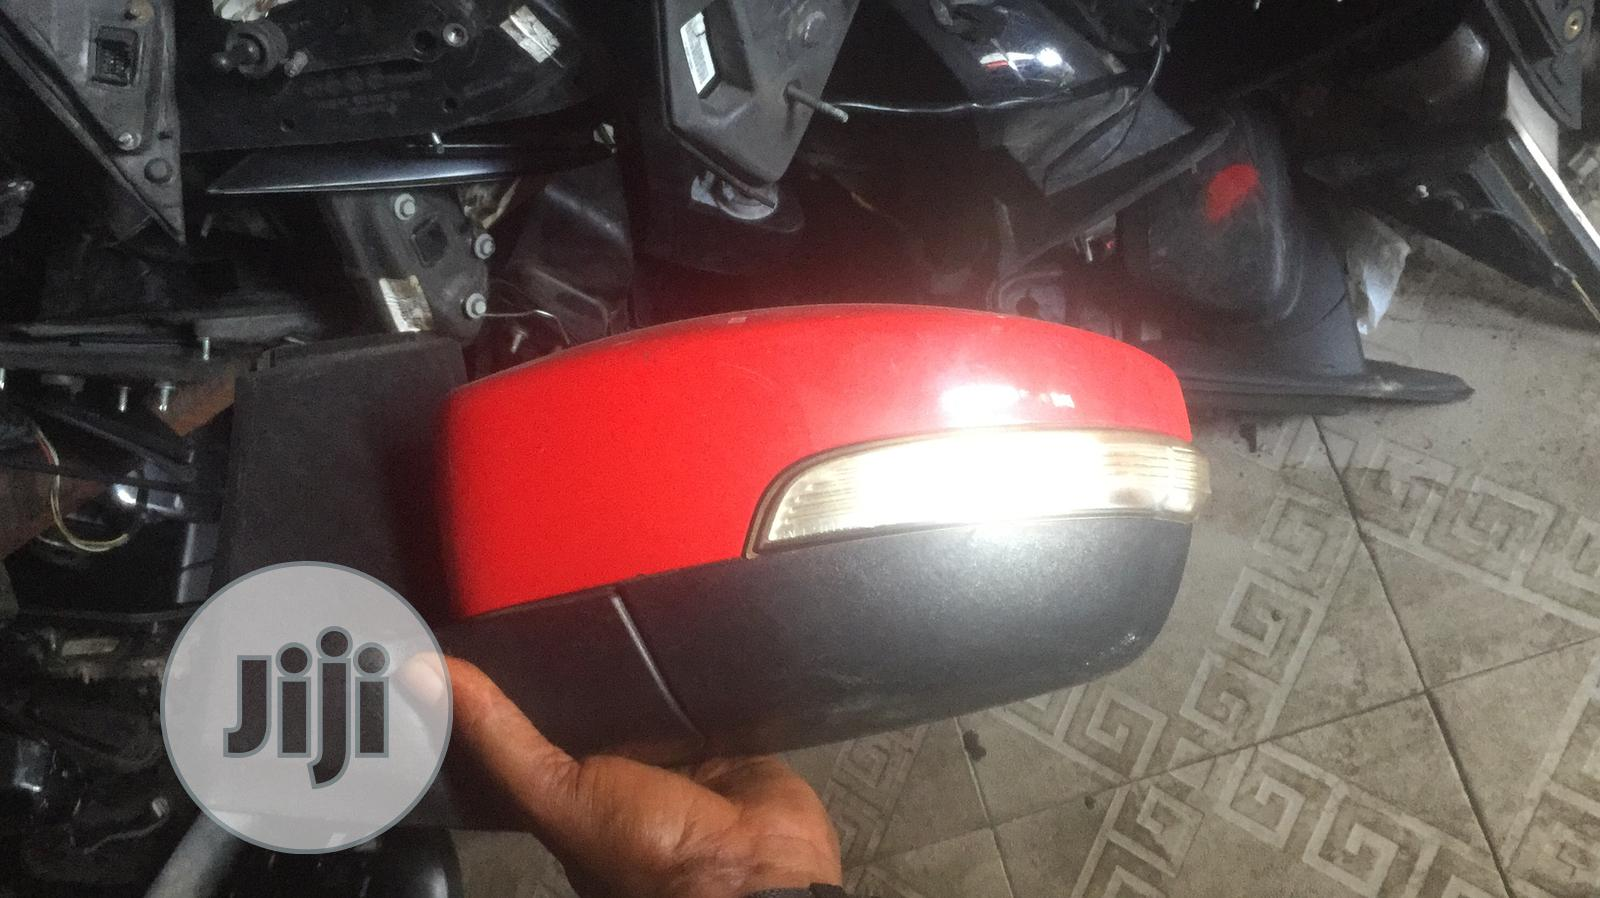 Ford Focus 2010 Model Side Mirror In Mushin Vehicle Parts Accessories Felix Sunday Jiji Ng For Sale In Mushin Buy Vehicle Parts Accessories From Felix Sunday On Jiji Ng